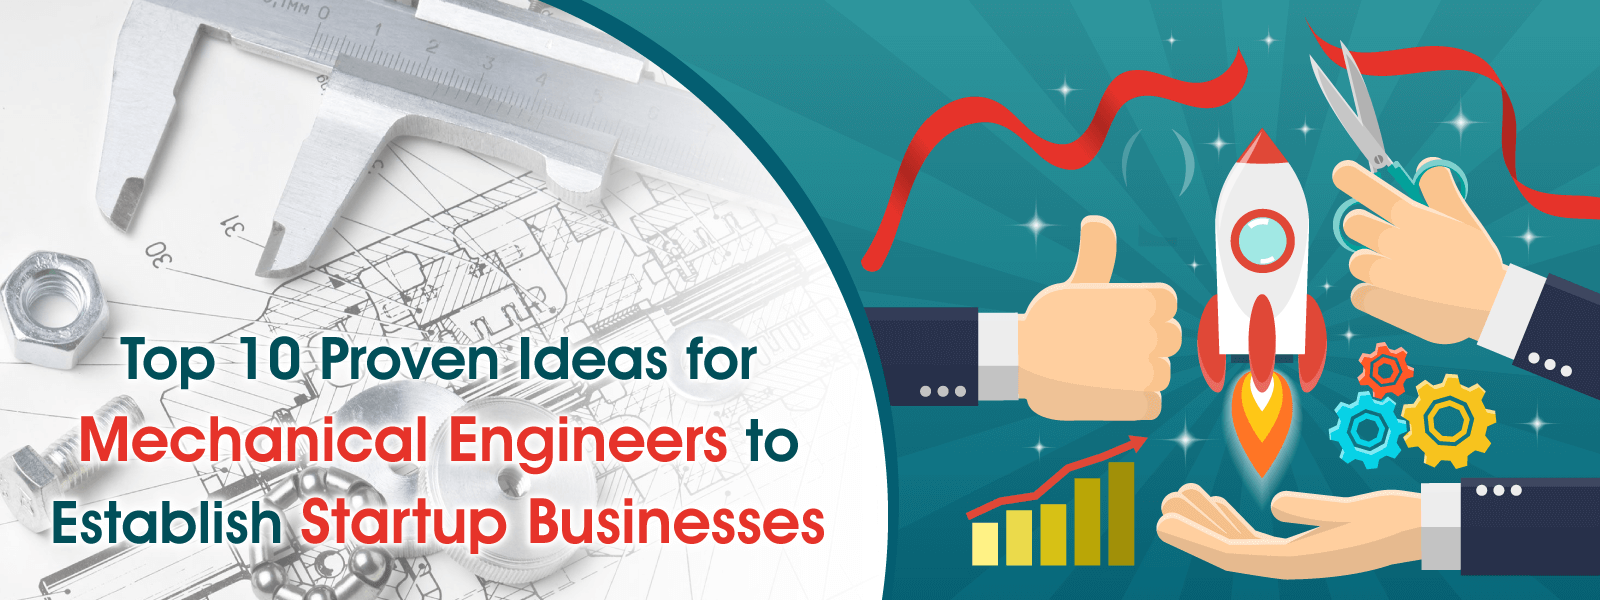 Top 10 Proven Ideas for Mechanical Engineers to Establish Startup Businesses